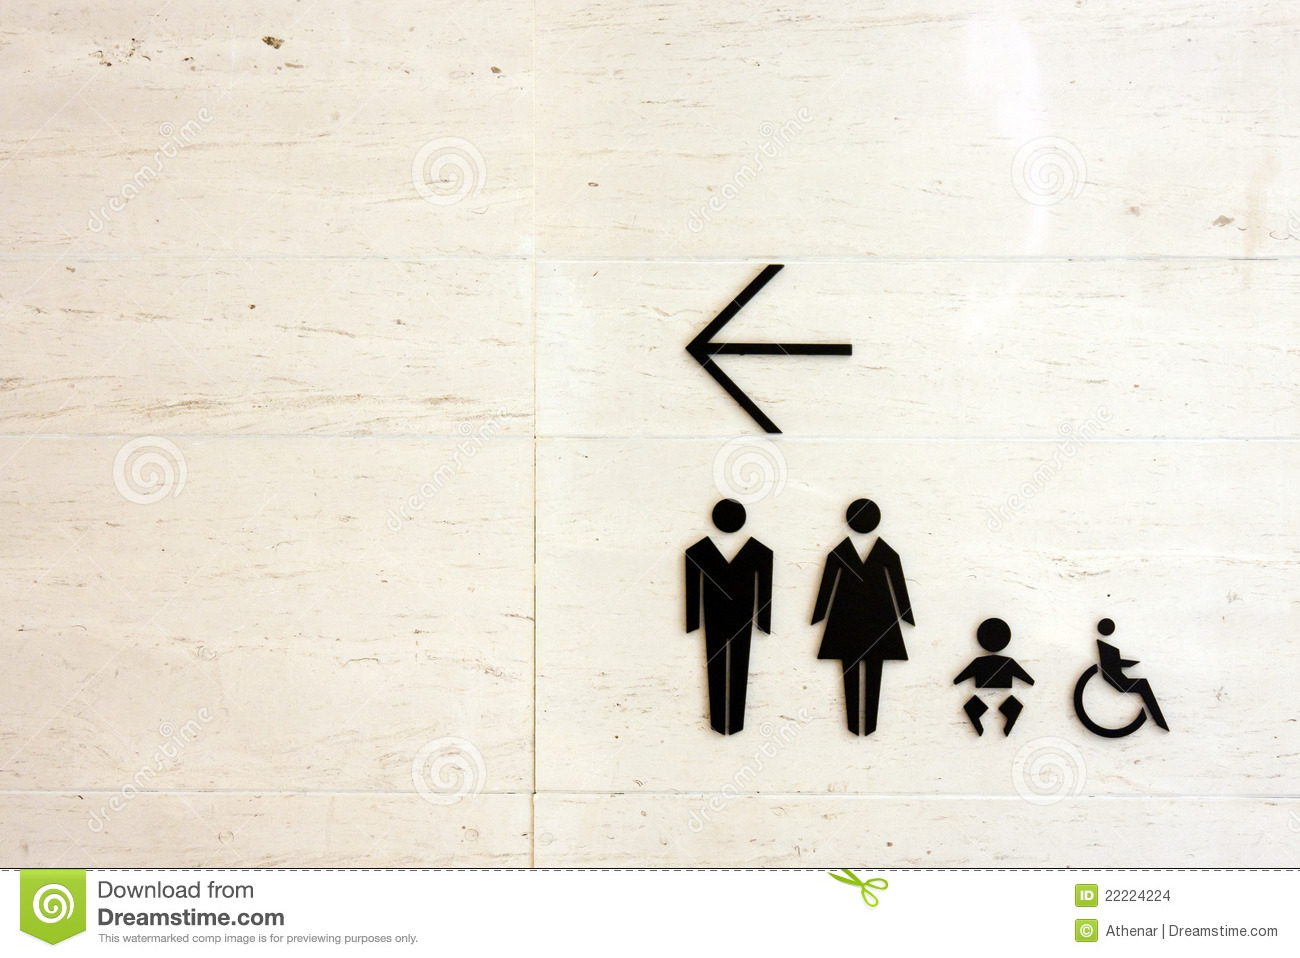 Toilet Sign For Male Female Baby And People With Disabilities Stock Images